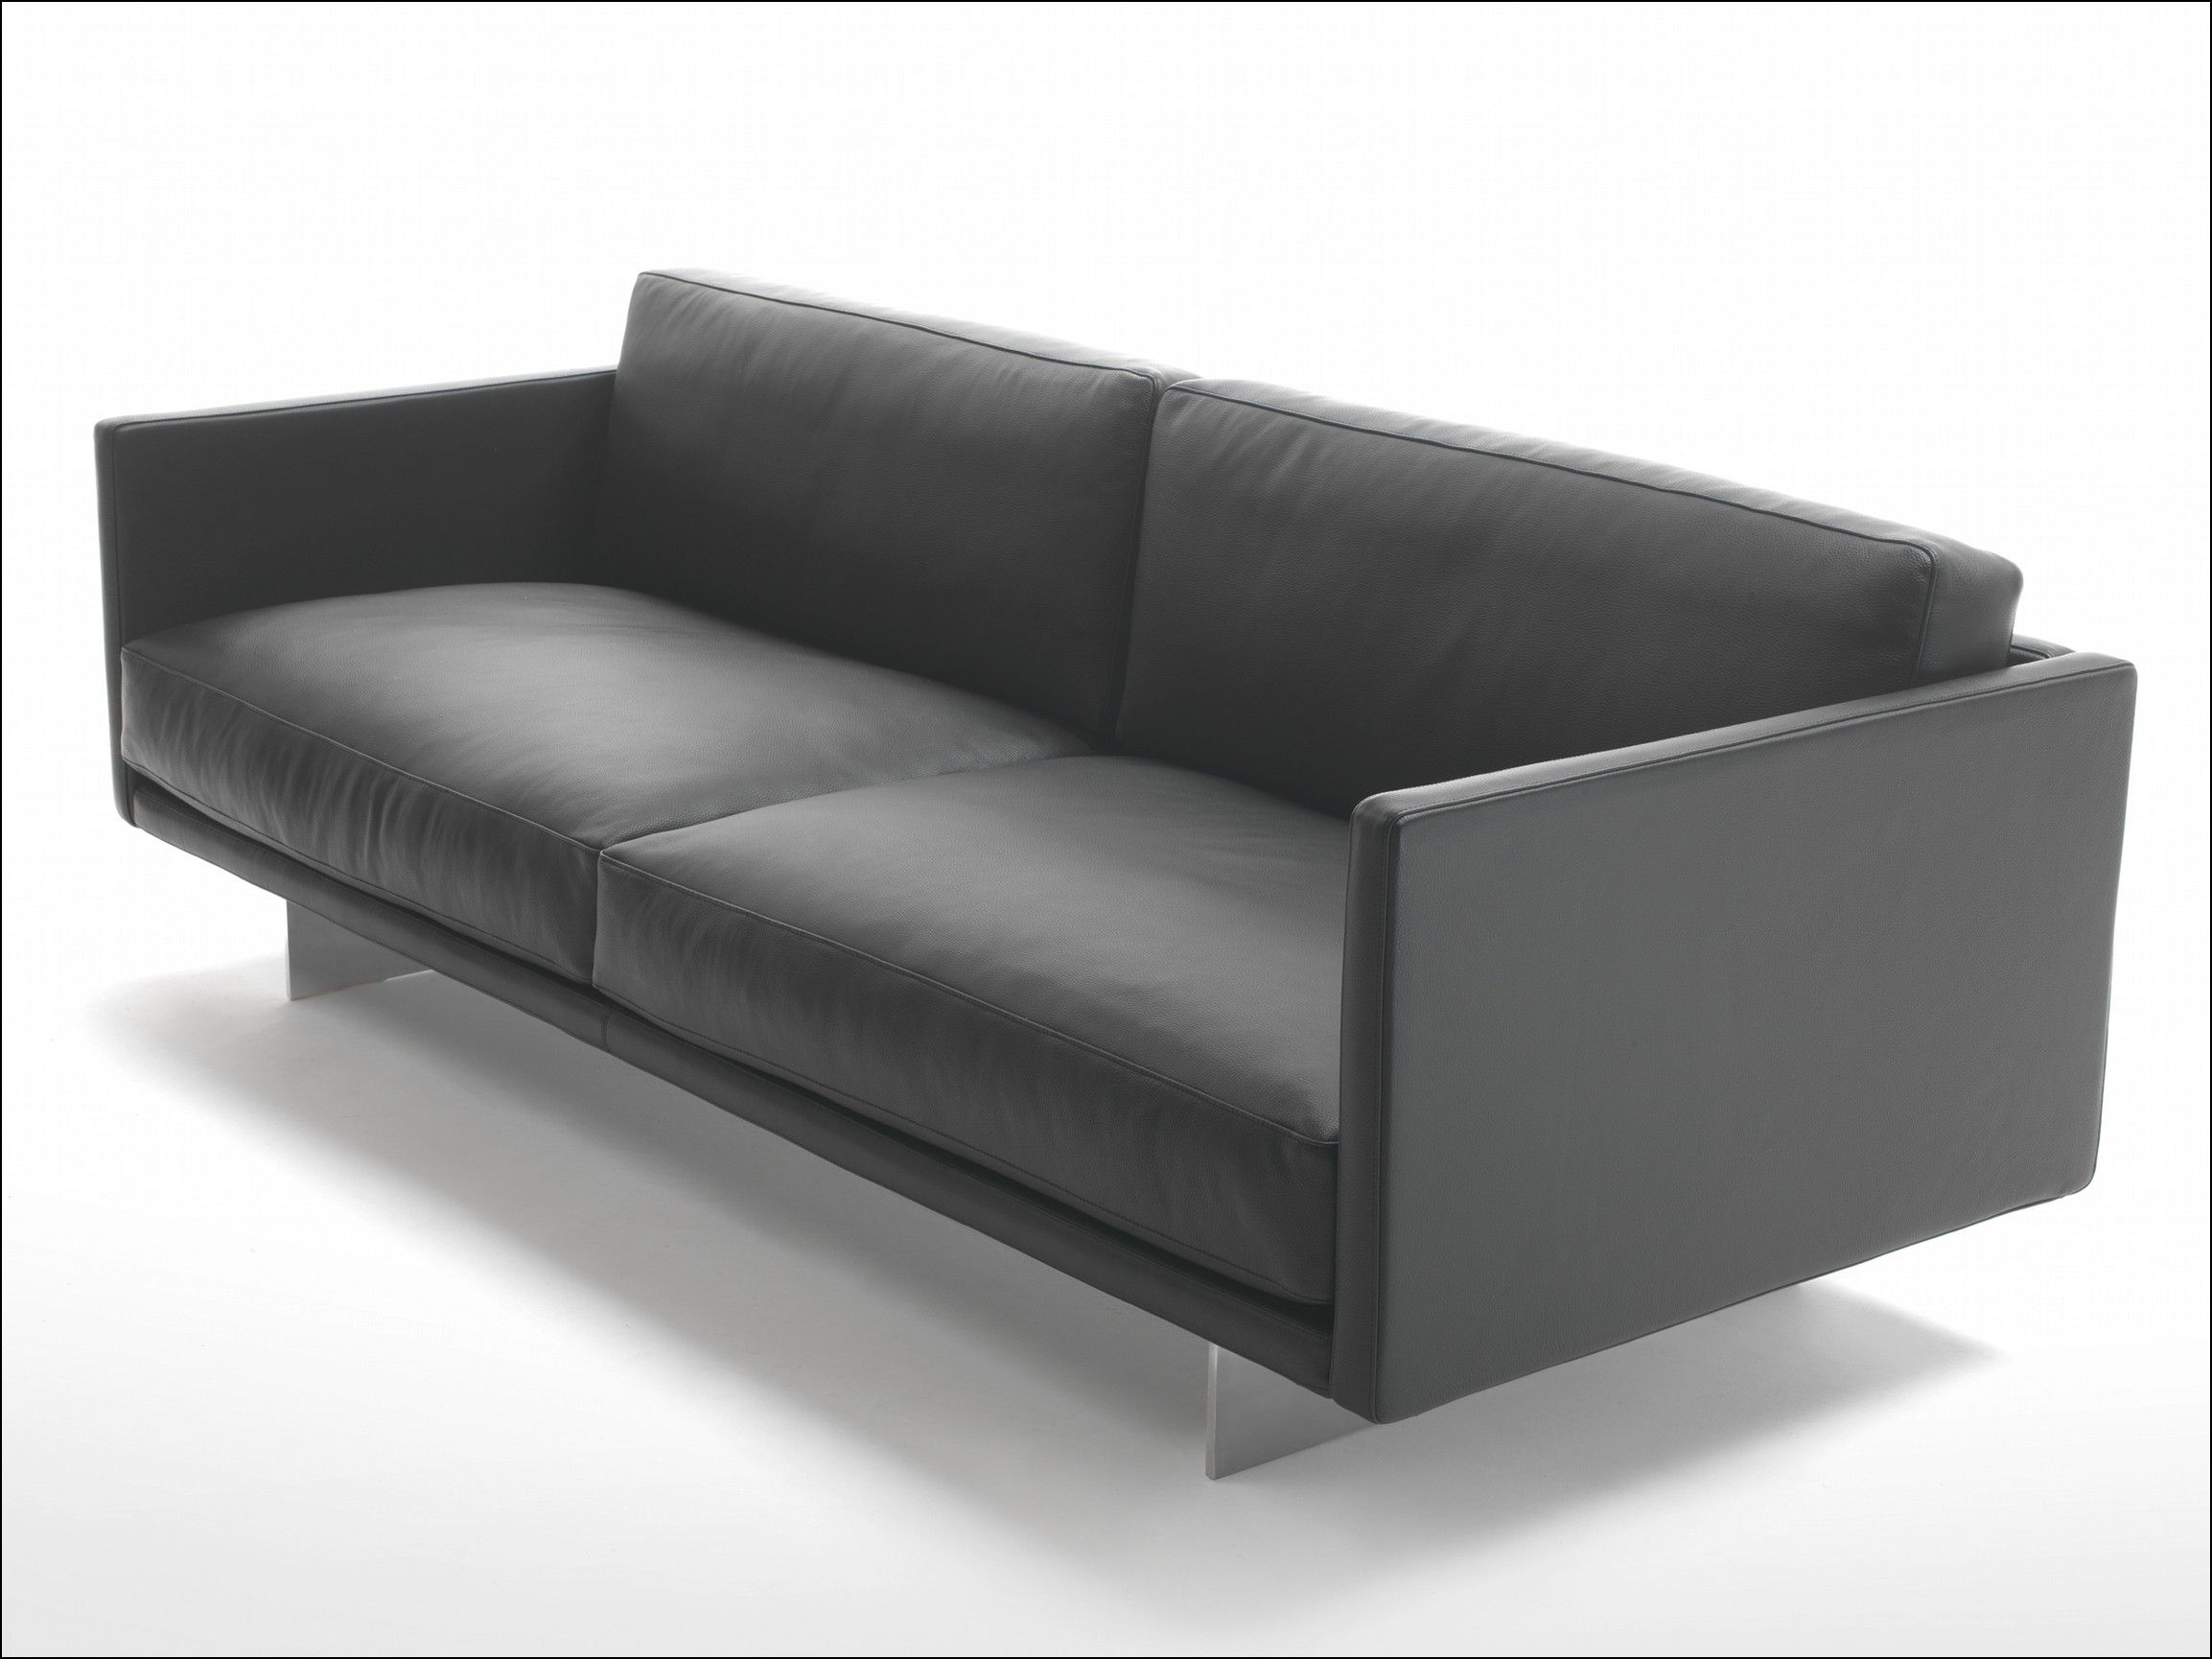 Ledercouch Ikea Ikea Office Couch Shop Pinterest Couch Ikea Office And Sofa